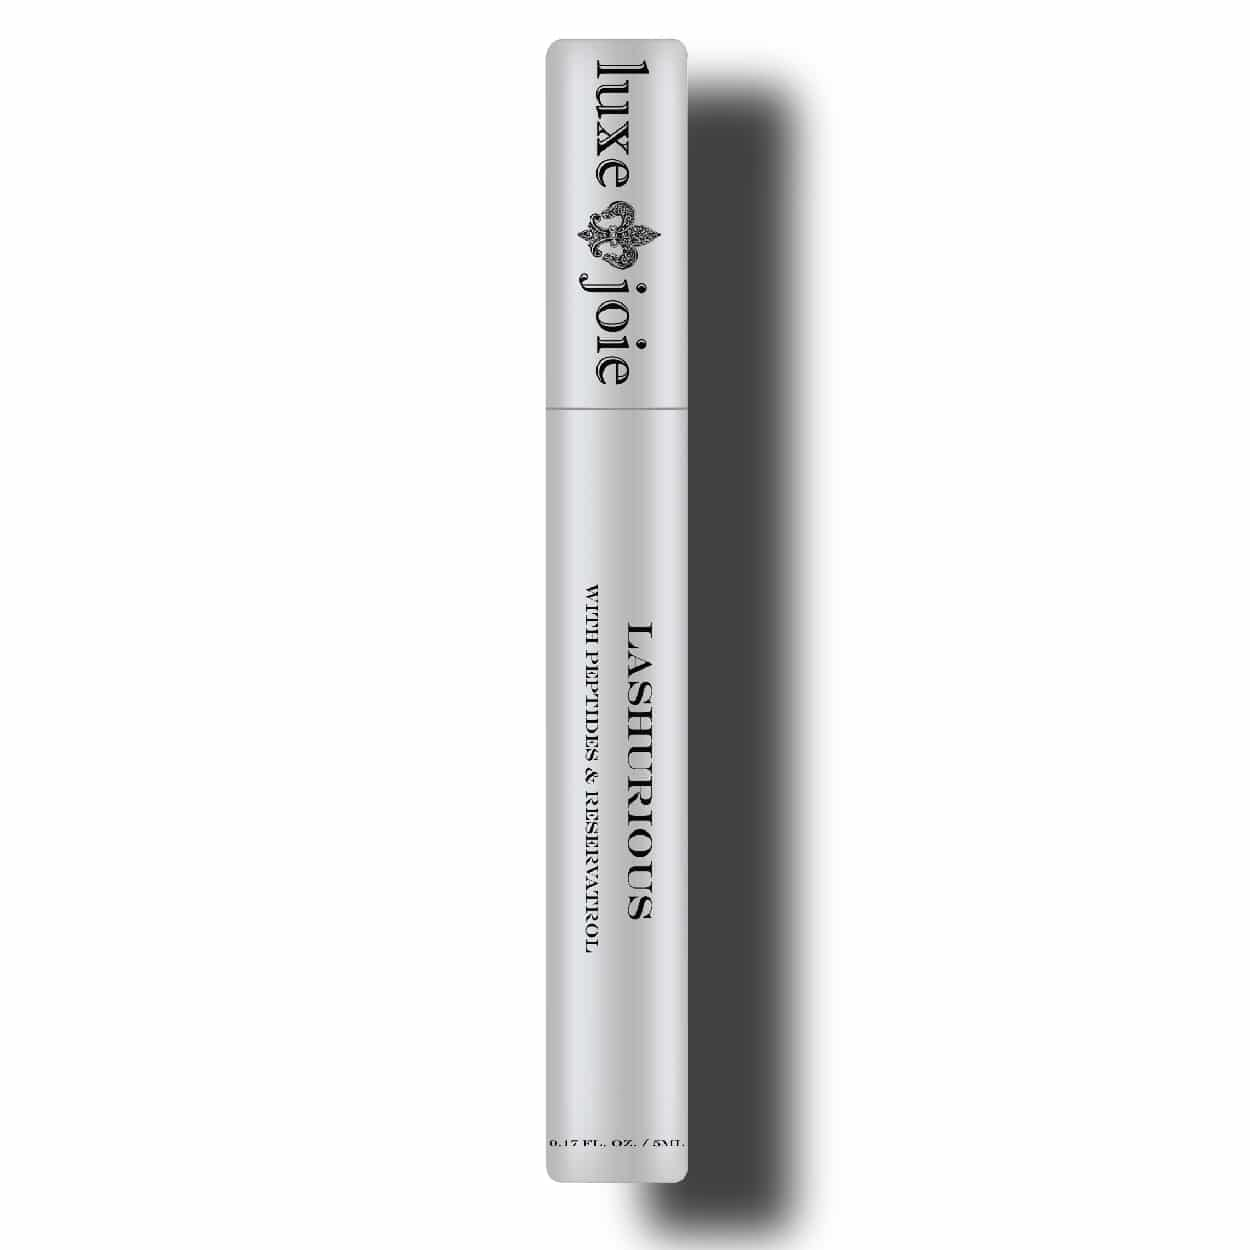 lashurious eye lash serum on white background